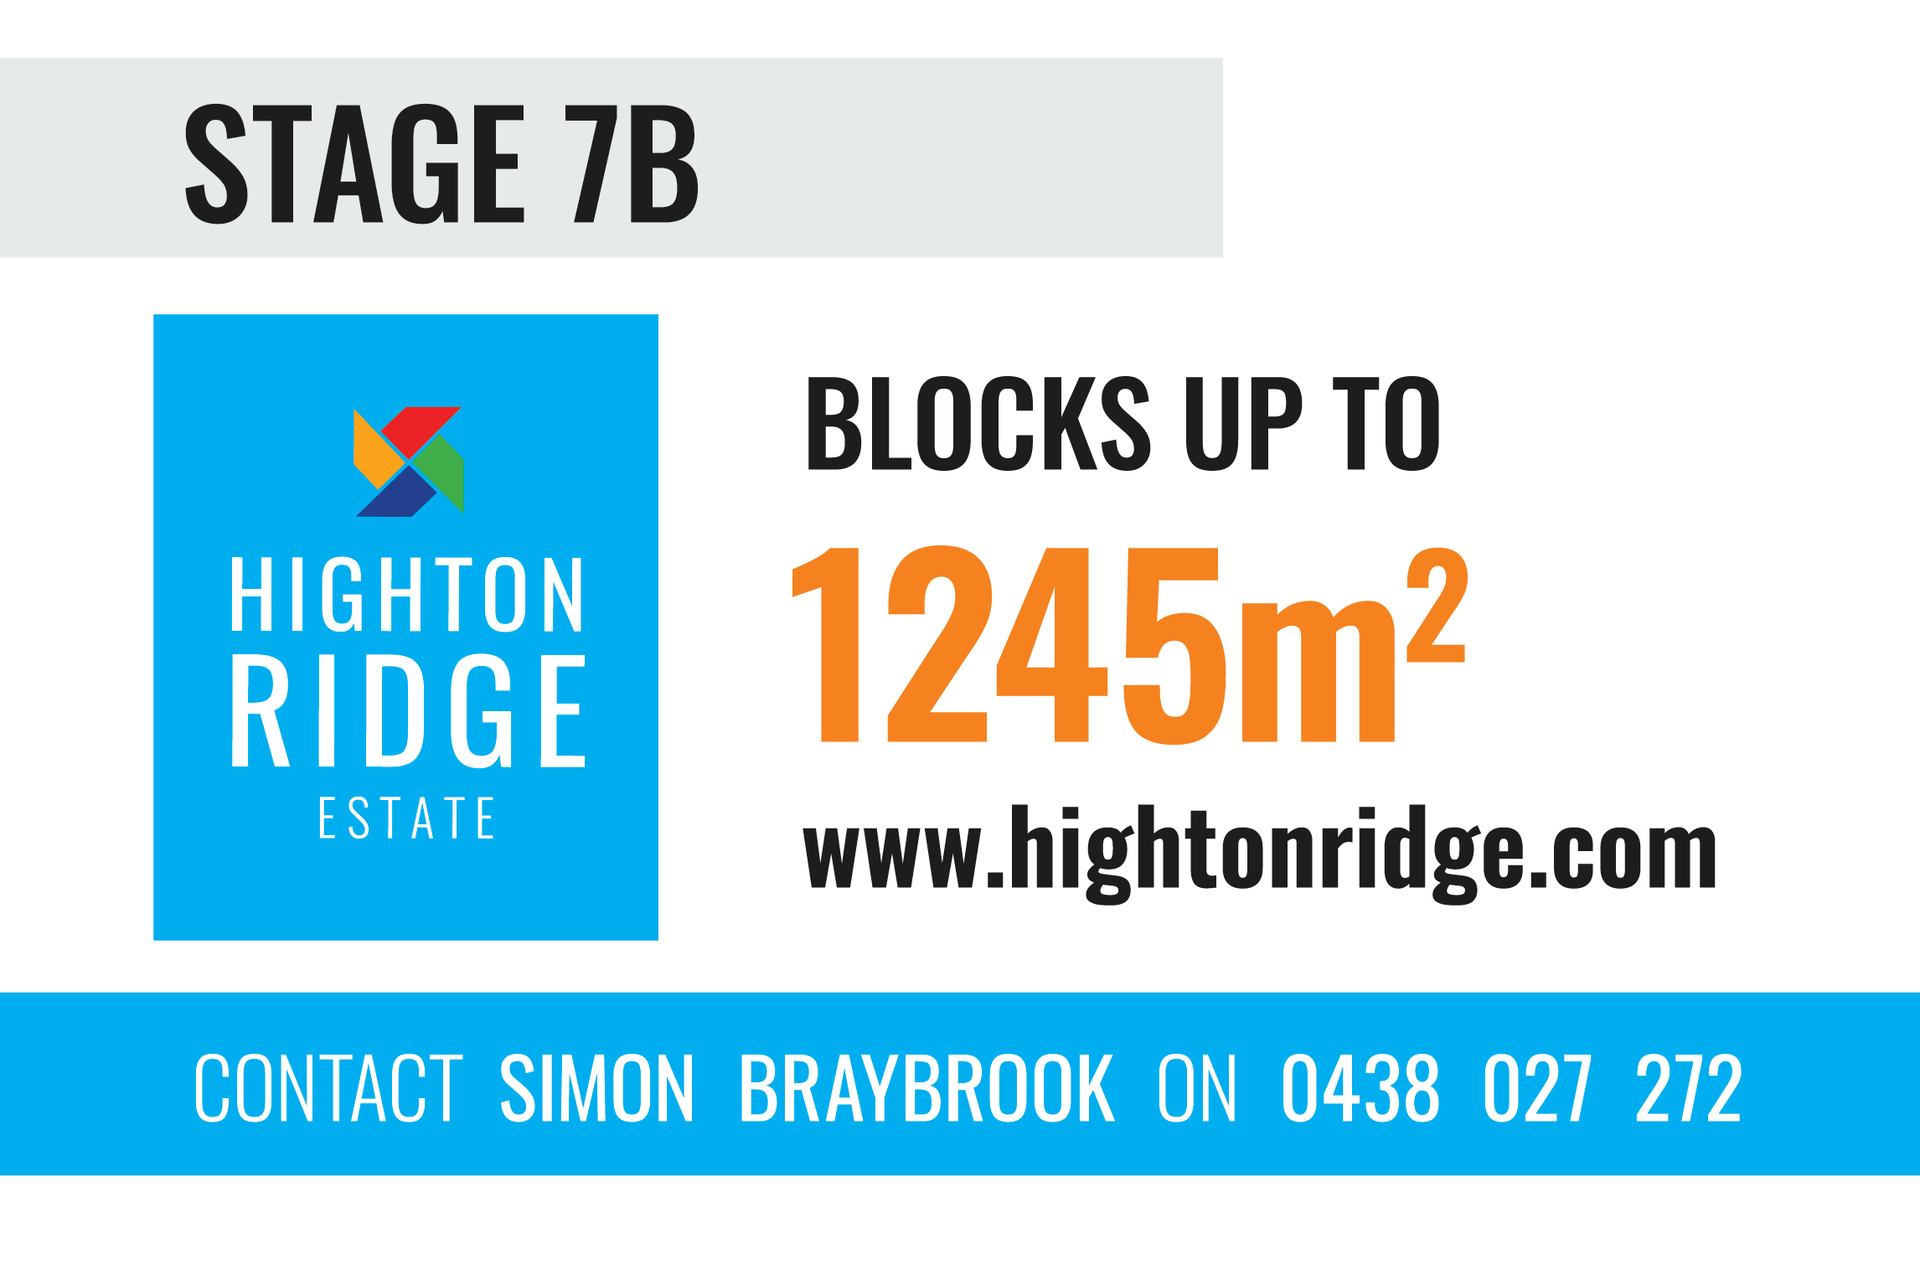 Stage 7B Highton Ridge Estate Highton